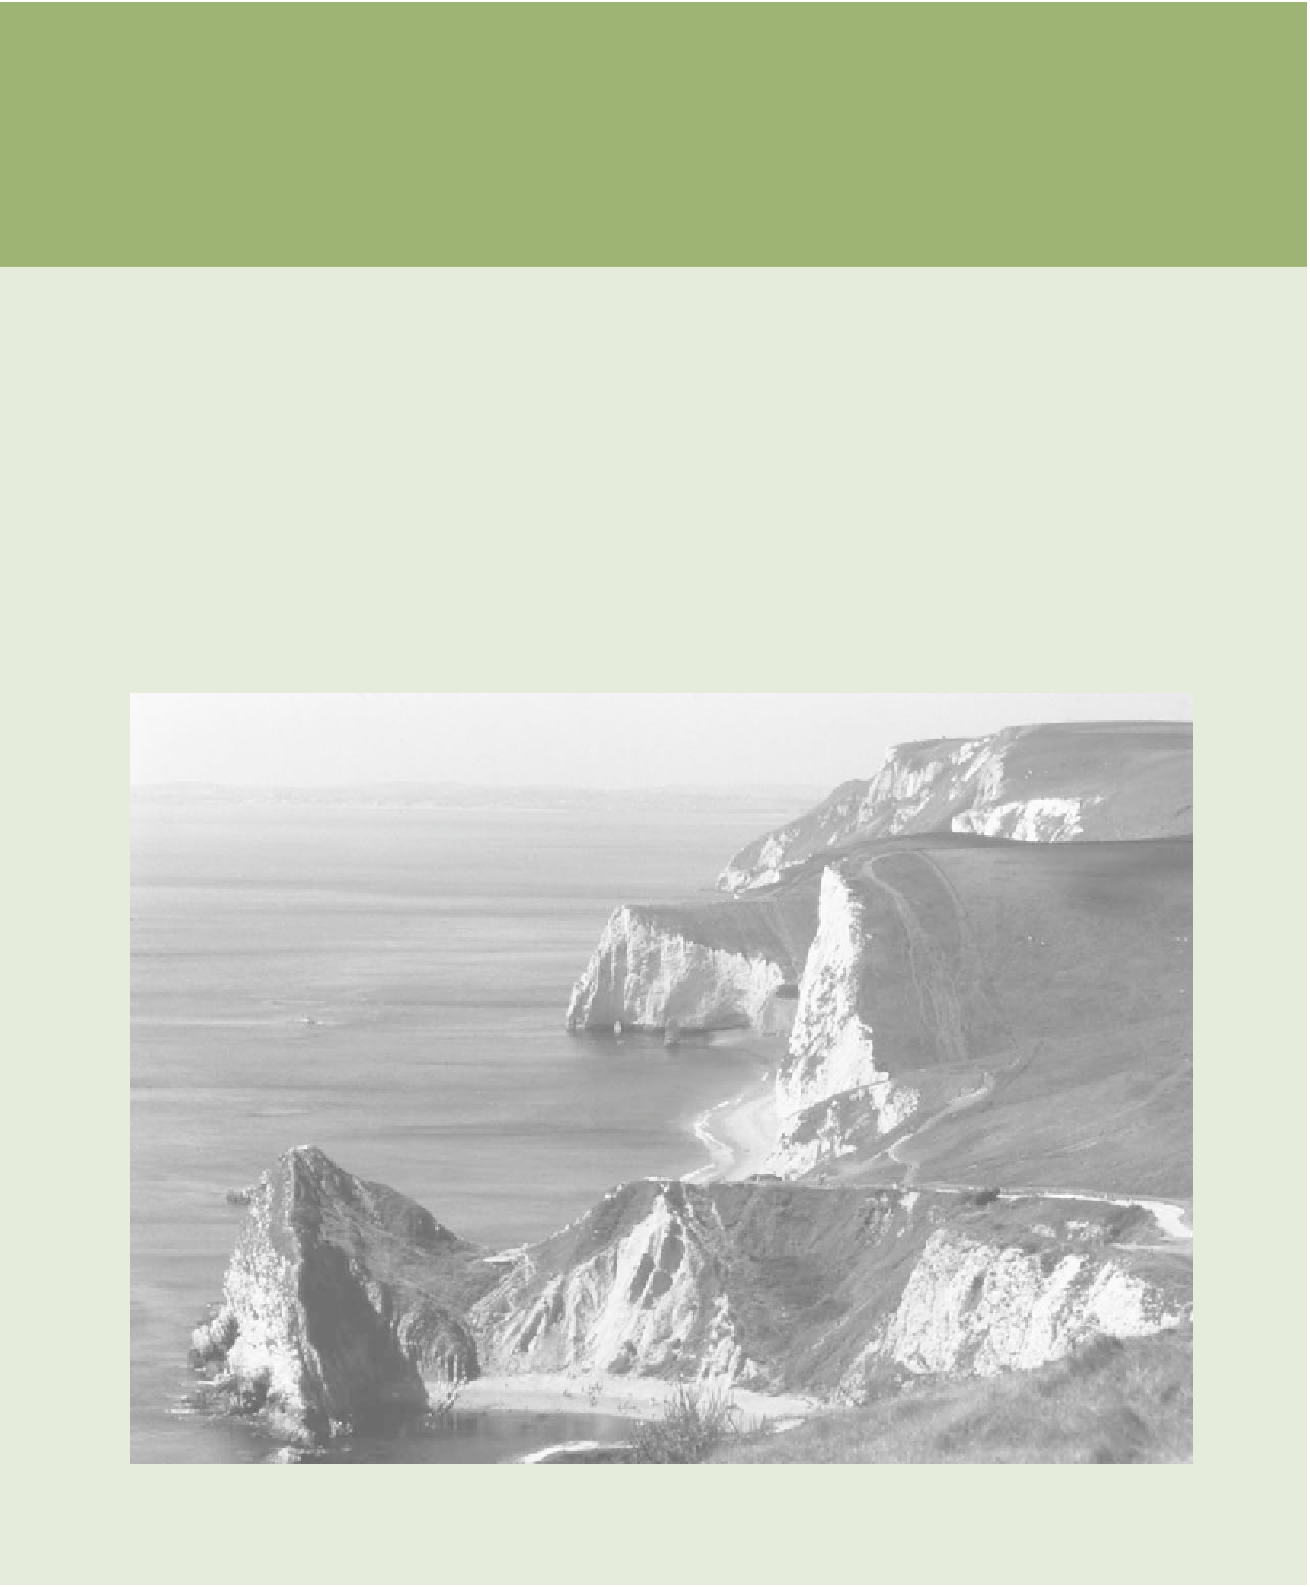 ecotourism principles practices and policies for sustainability pdf